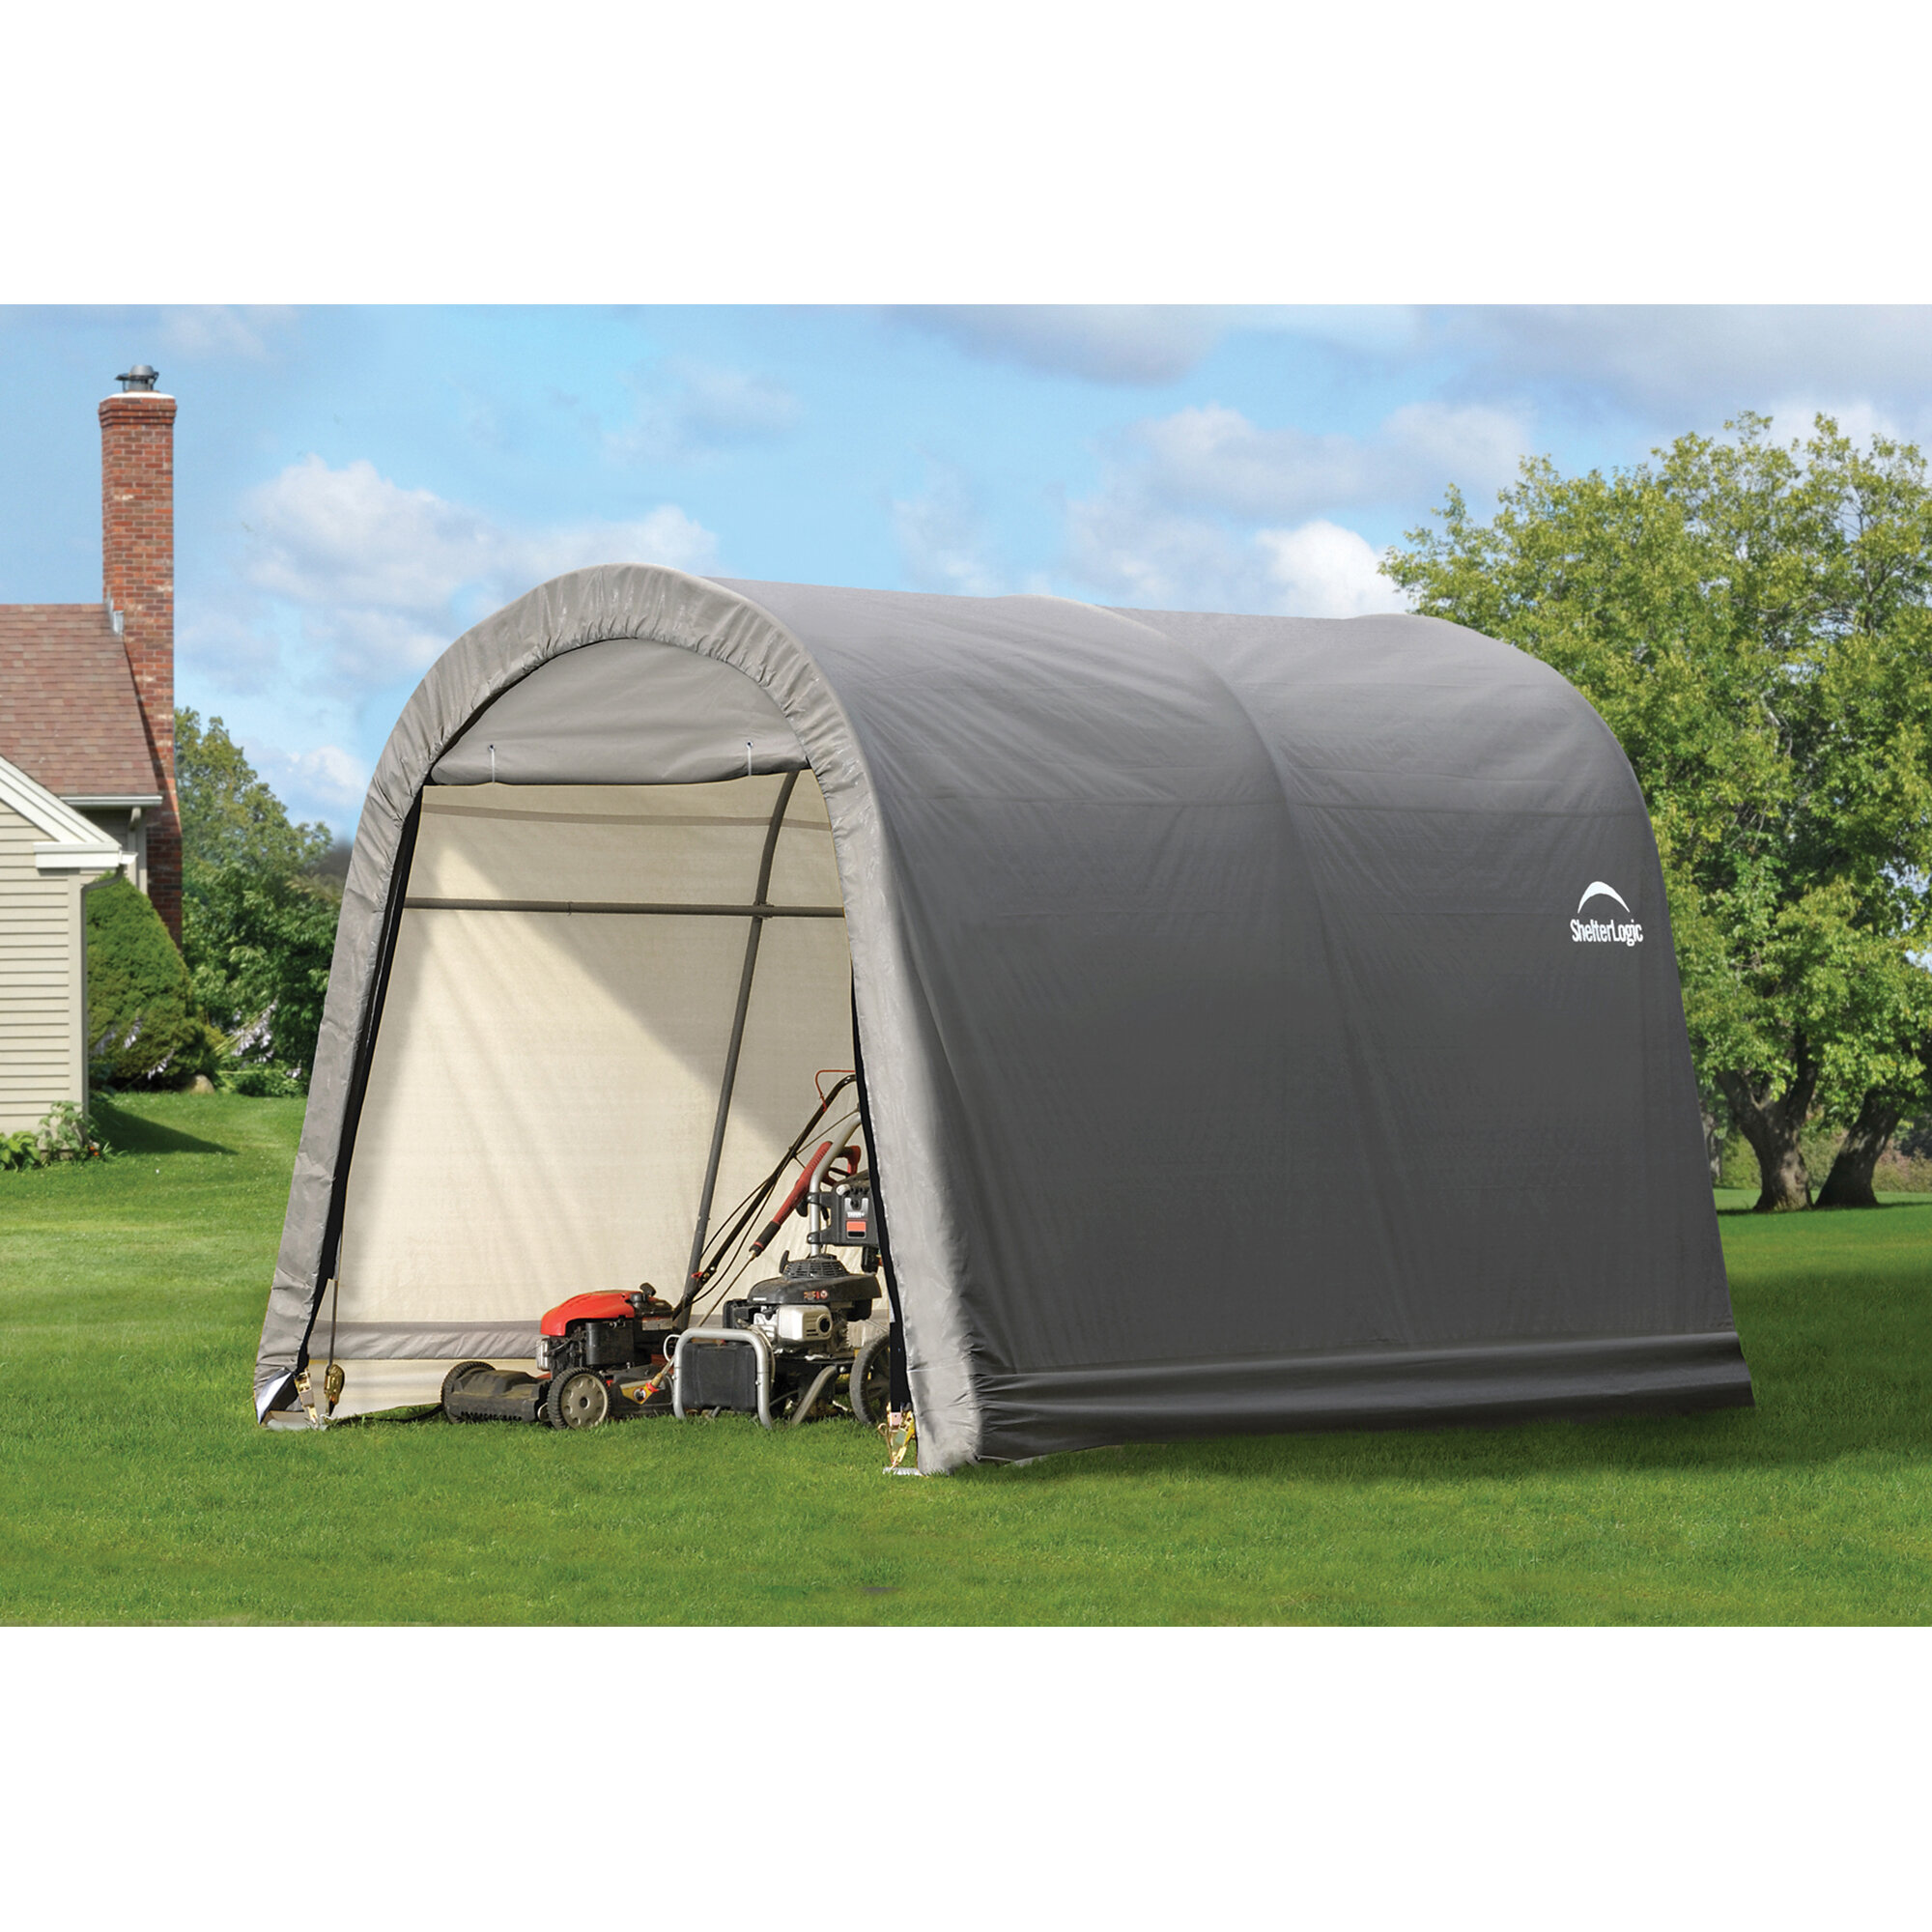 a shelterlogic shelters box in category reviews roundtop kit car garage portable life x